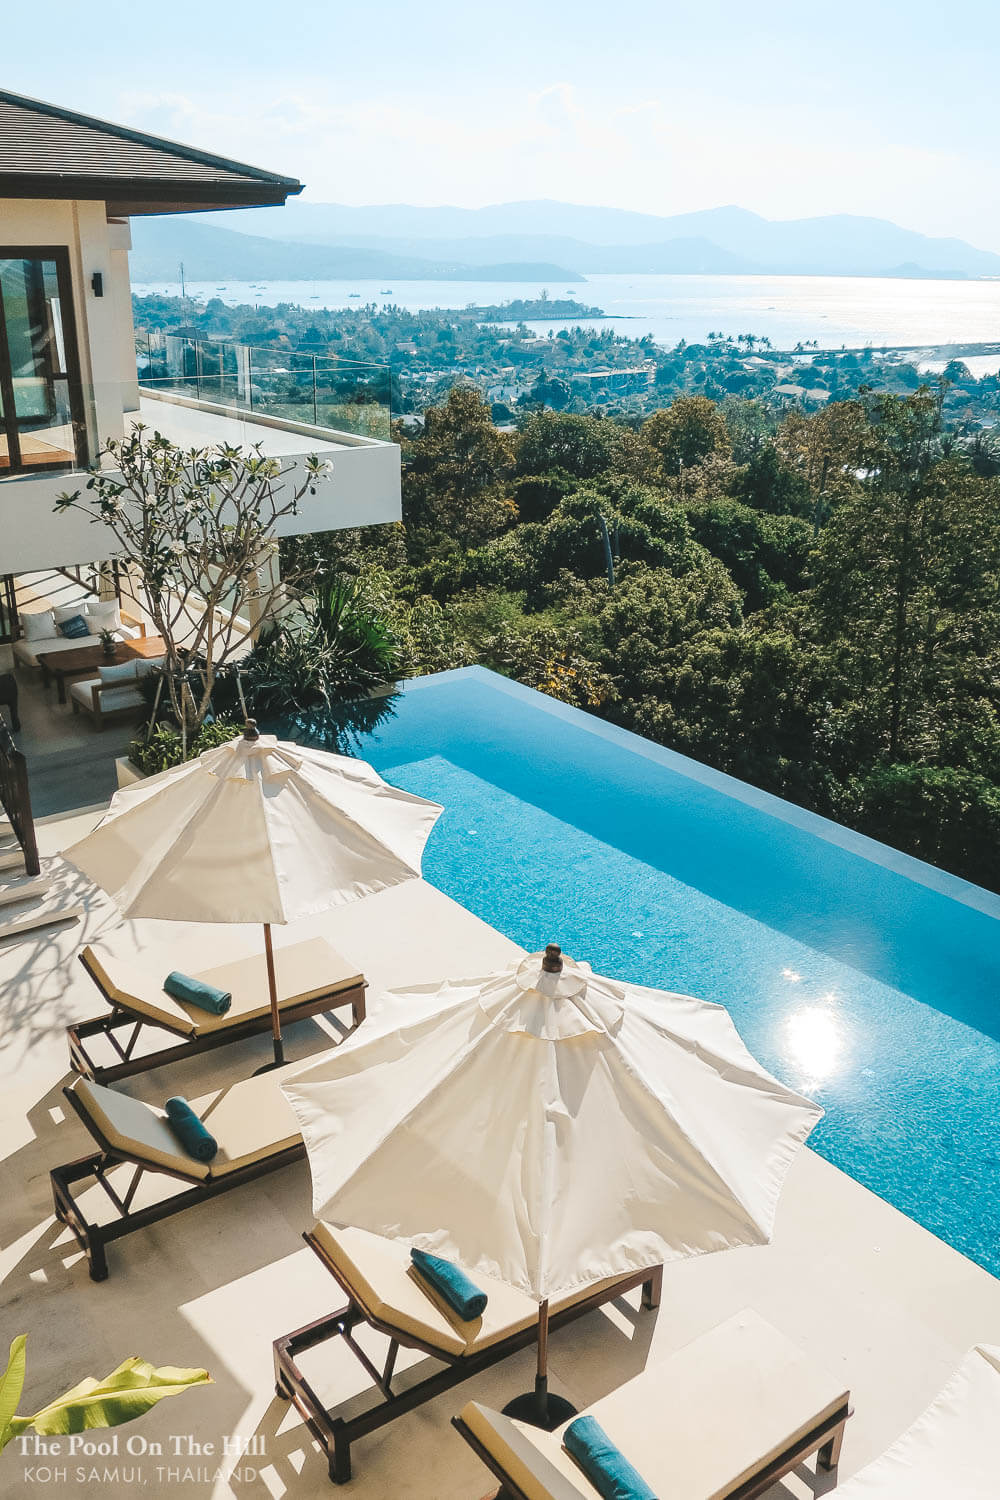 How to rent a villa in Thailand? Villa-hunting tip #11: Some villas in Thailand will have rules particular to the property – almost always to keep you safe